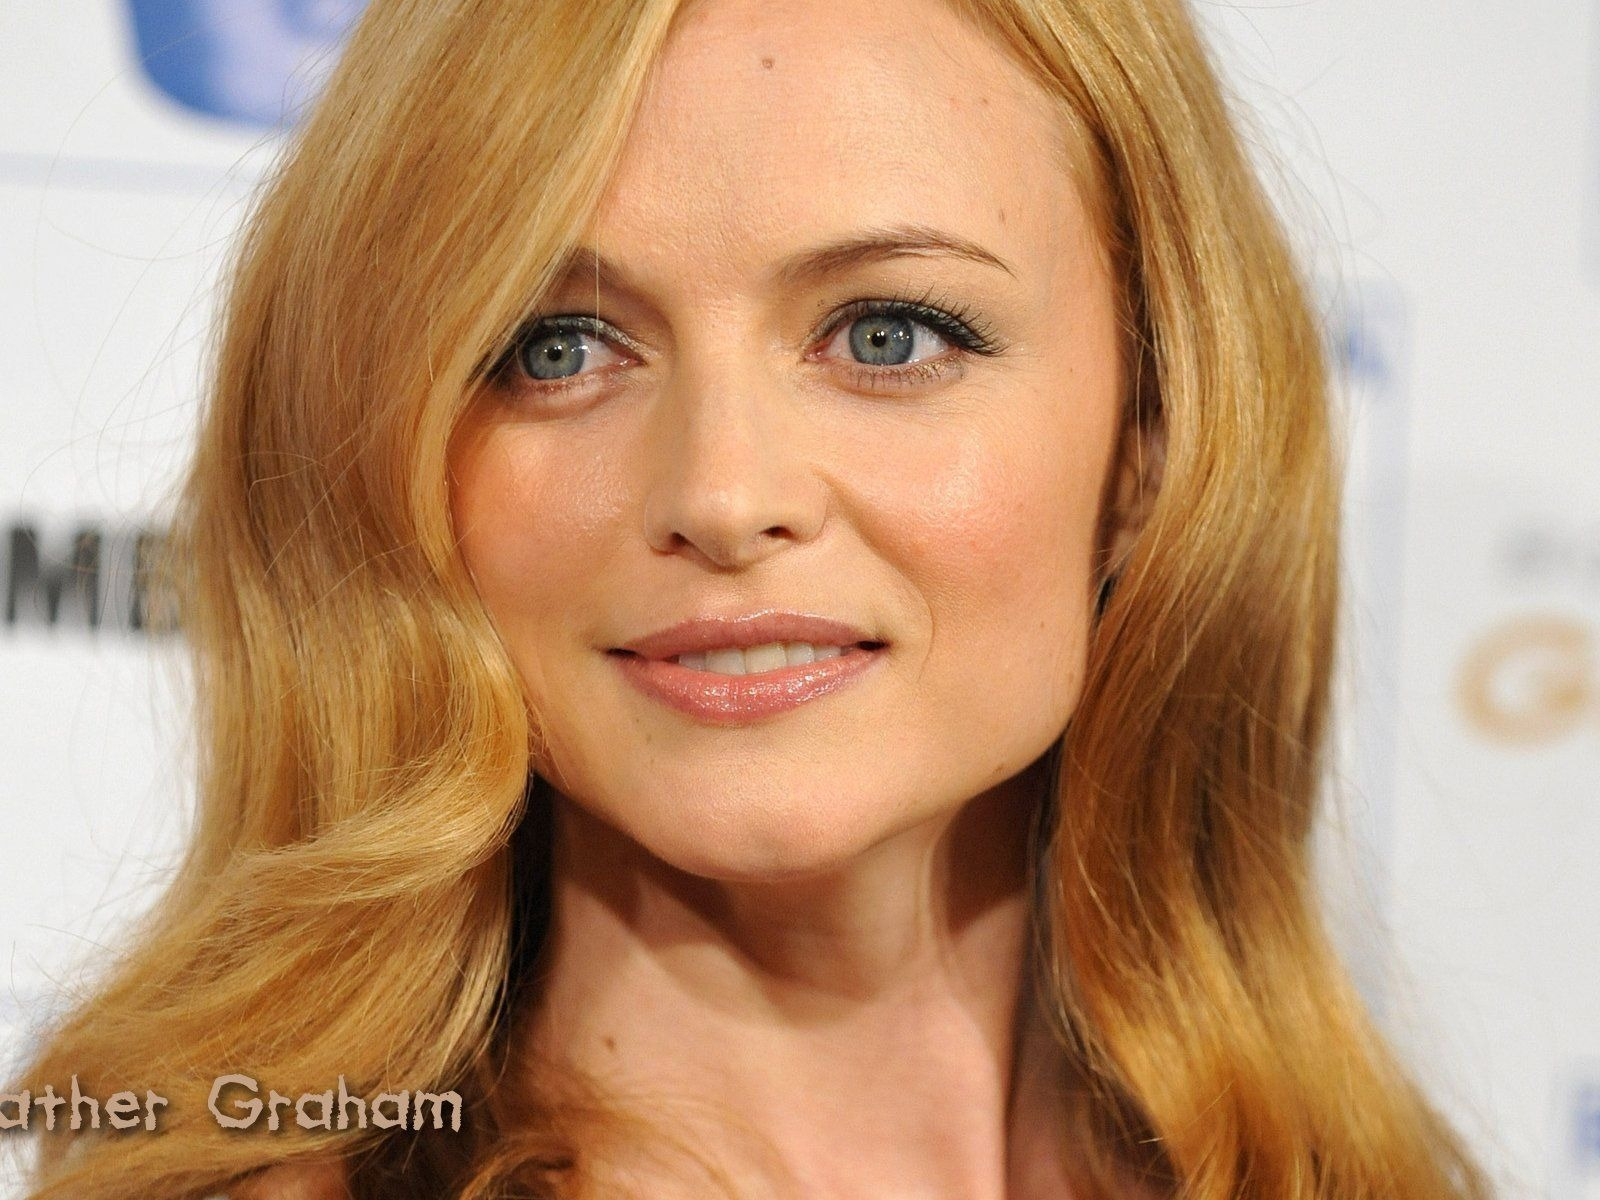 Heather Graham #003 - 1600x1200 Wallpapers Pictures Photos Images